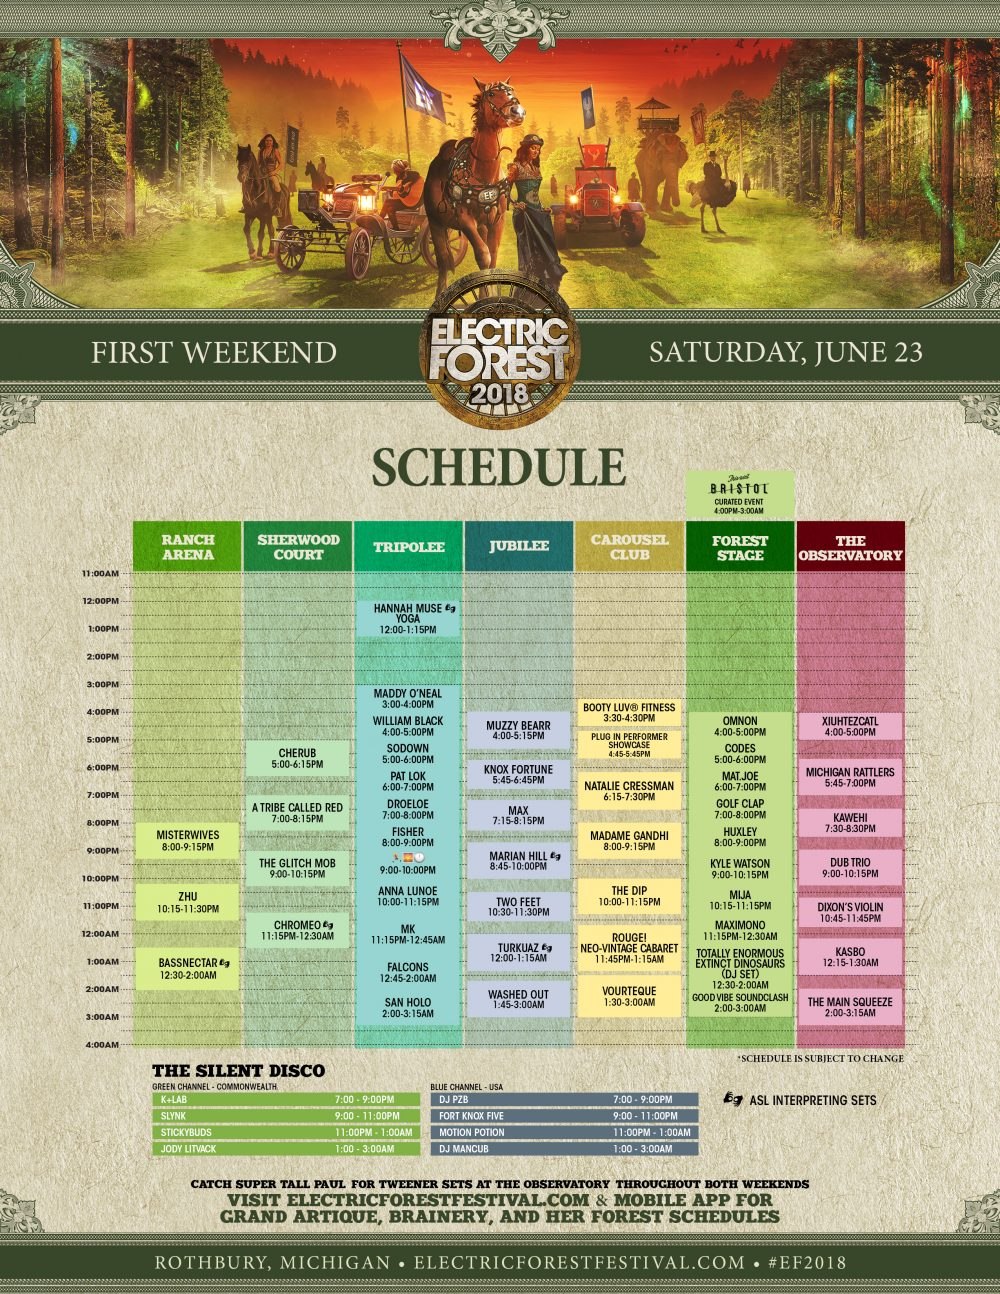 Electric Forest 2018 Weekend 1